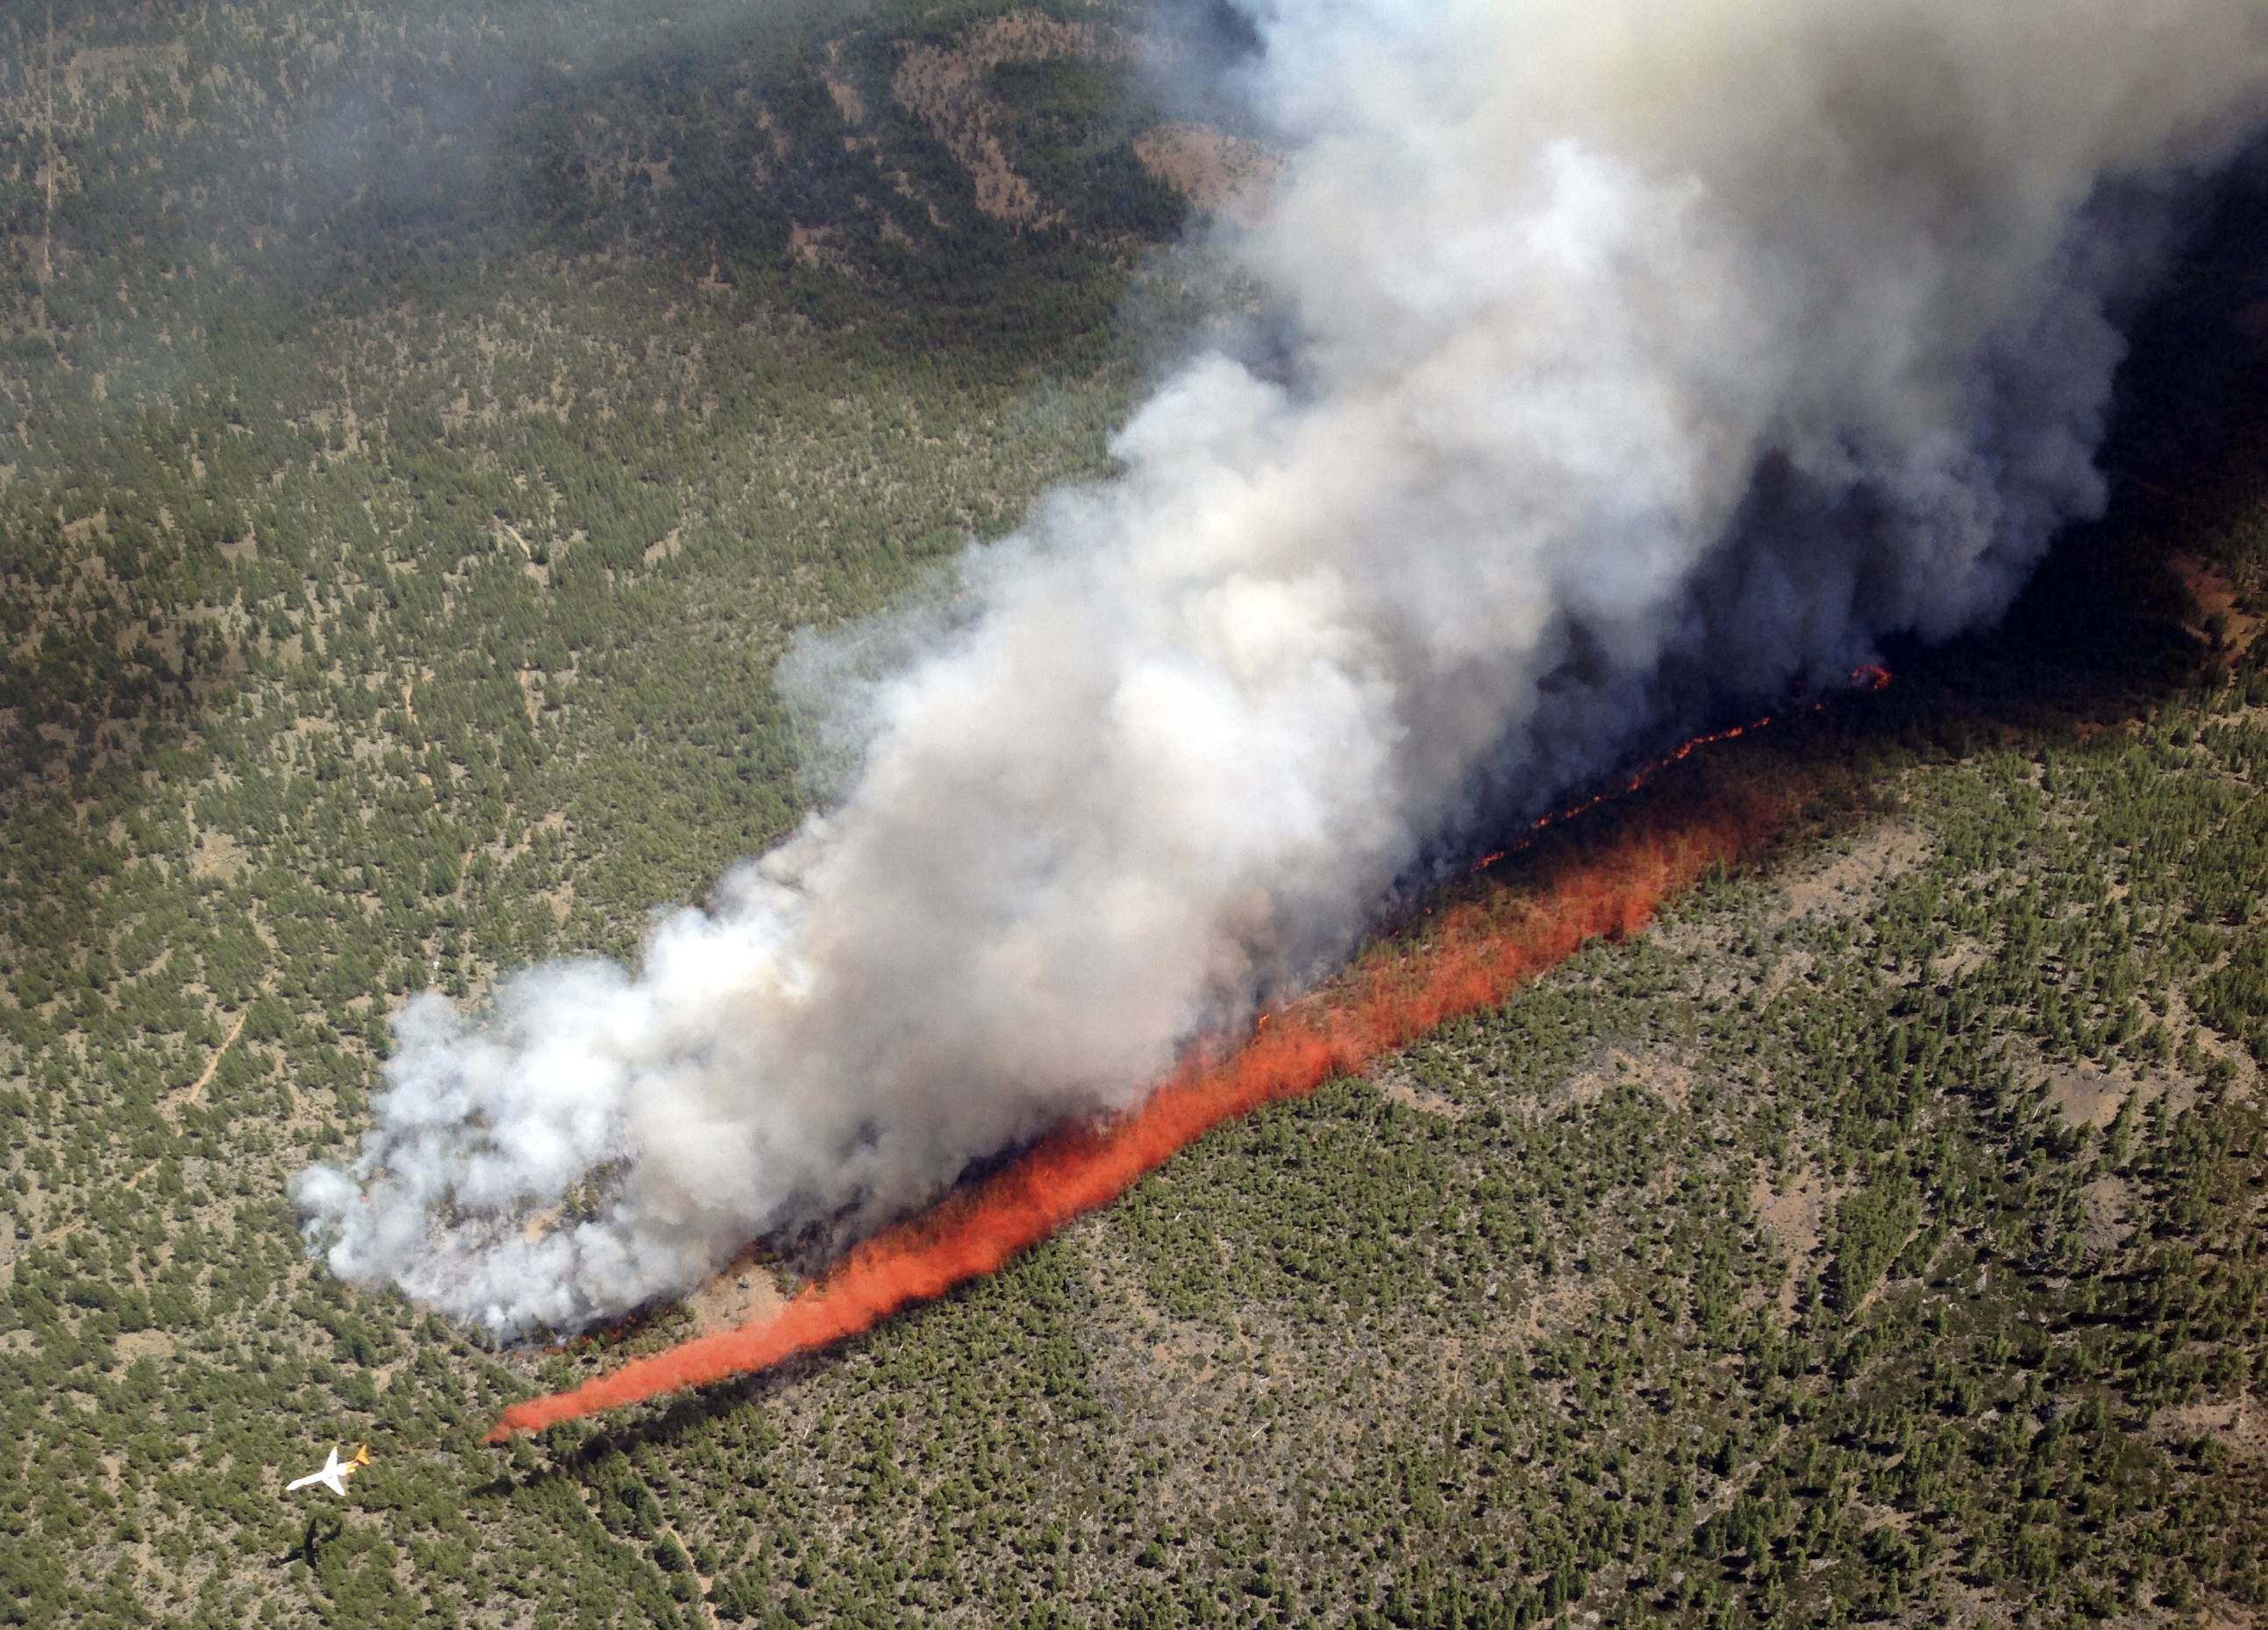 An MD-87 air tanker lays a line of retardant to flank the Two Bulls Fire burning at the Deschutes National Forest, about 10 miles west of Bend, Ore.